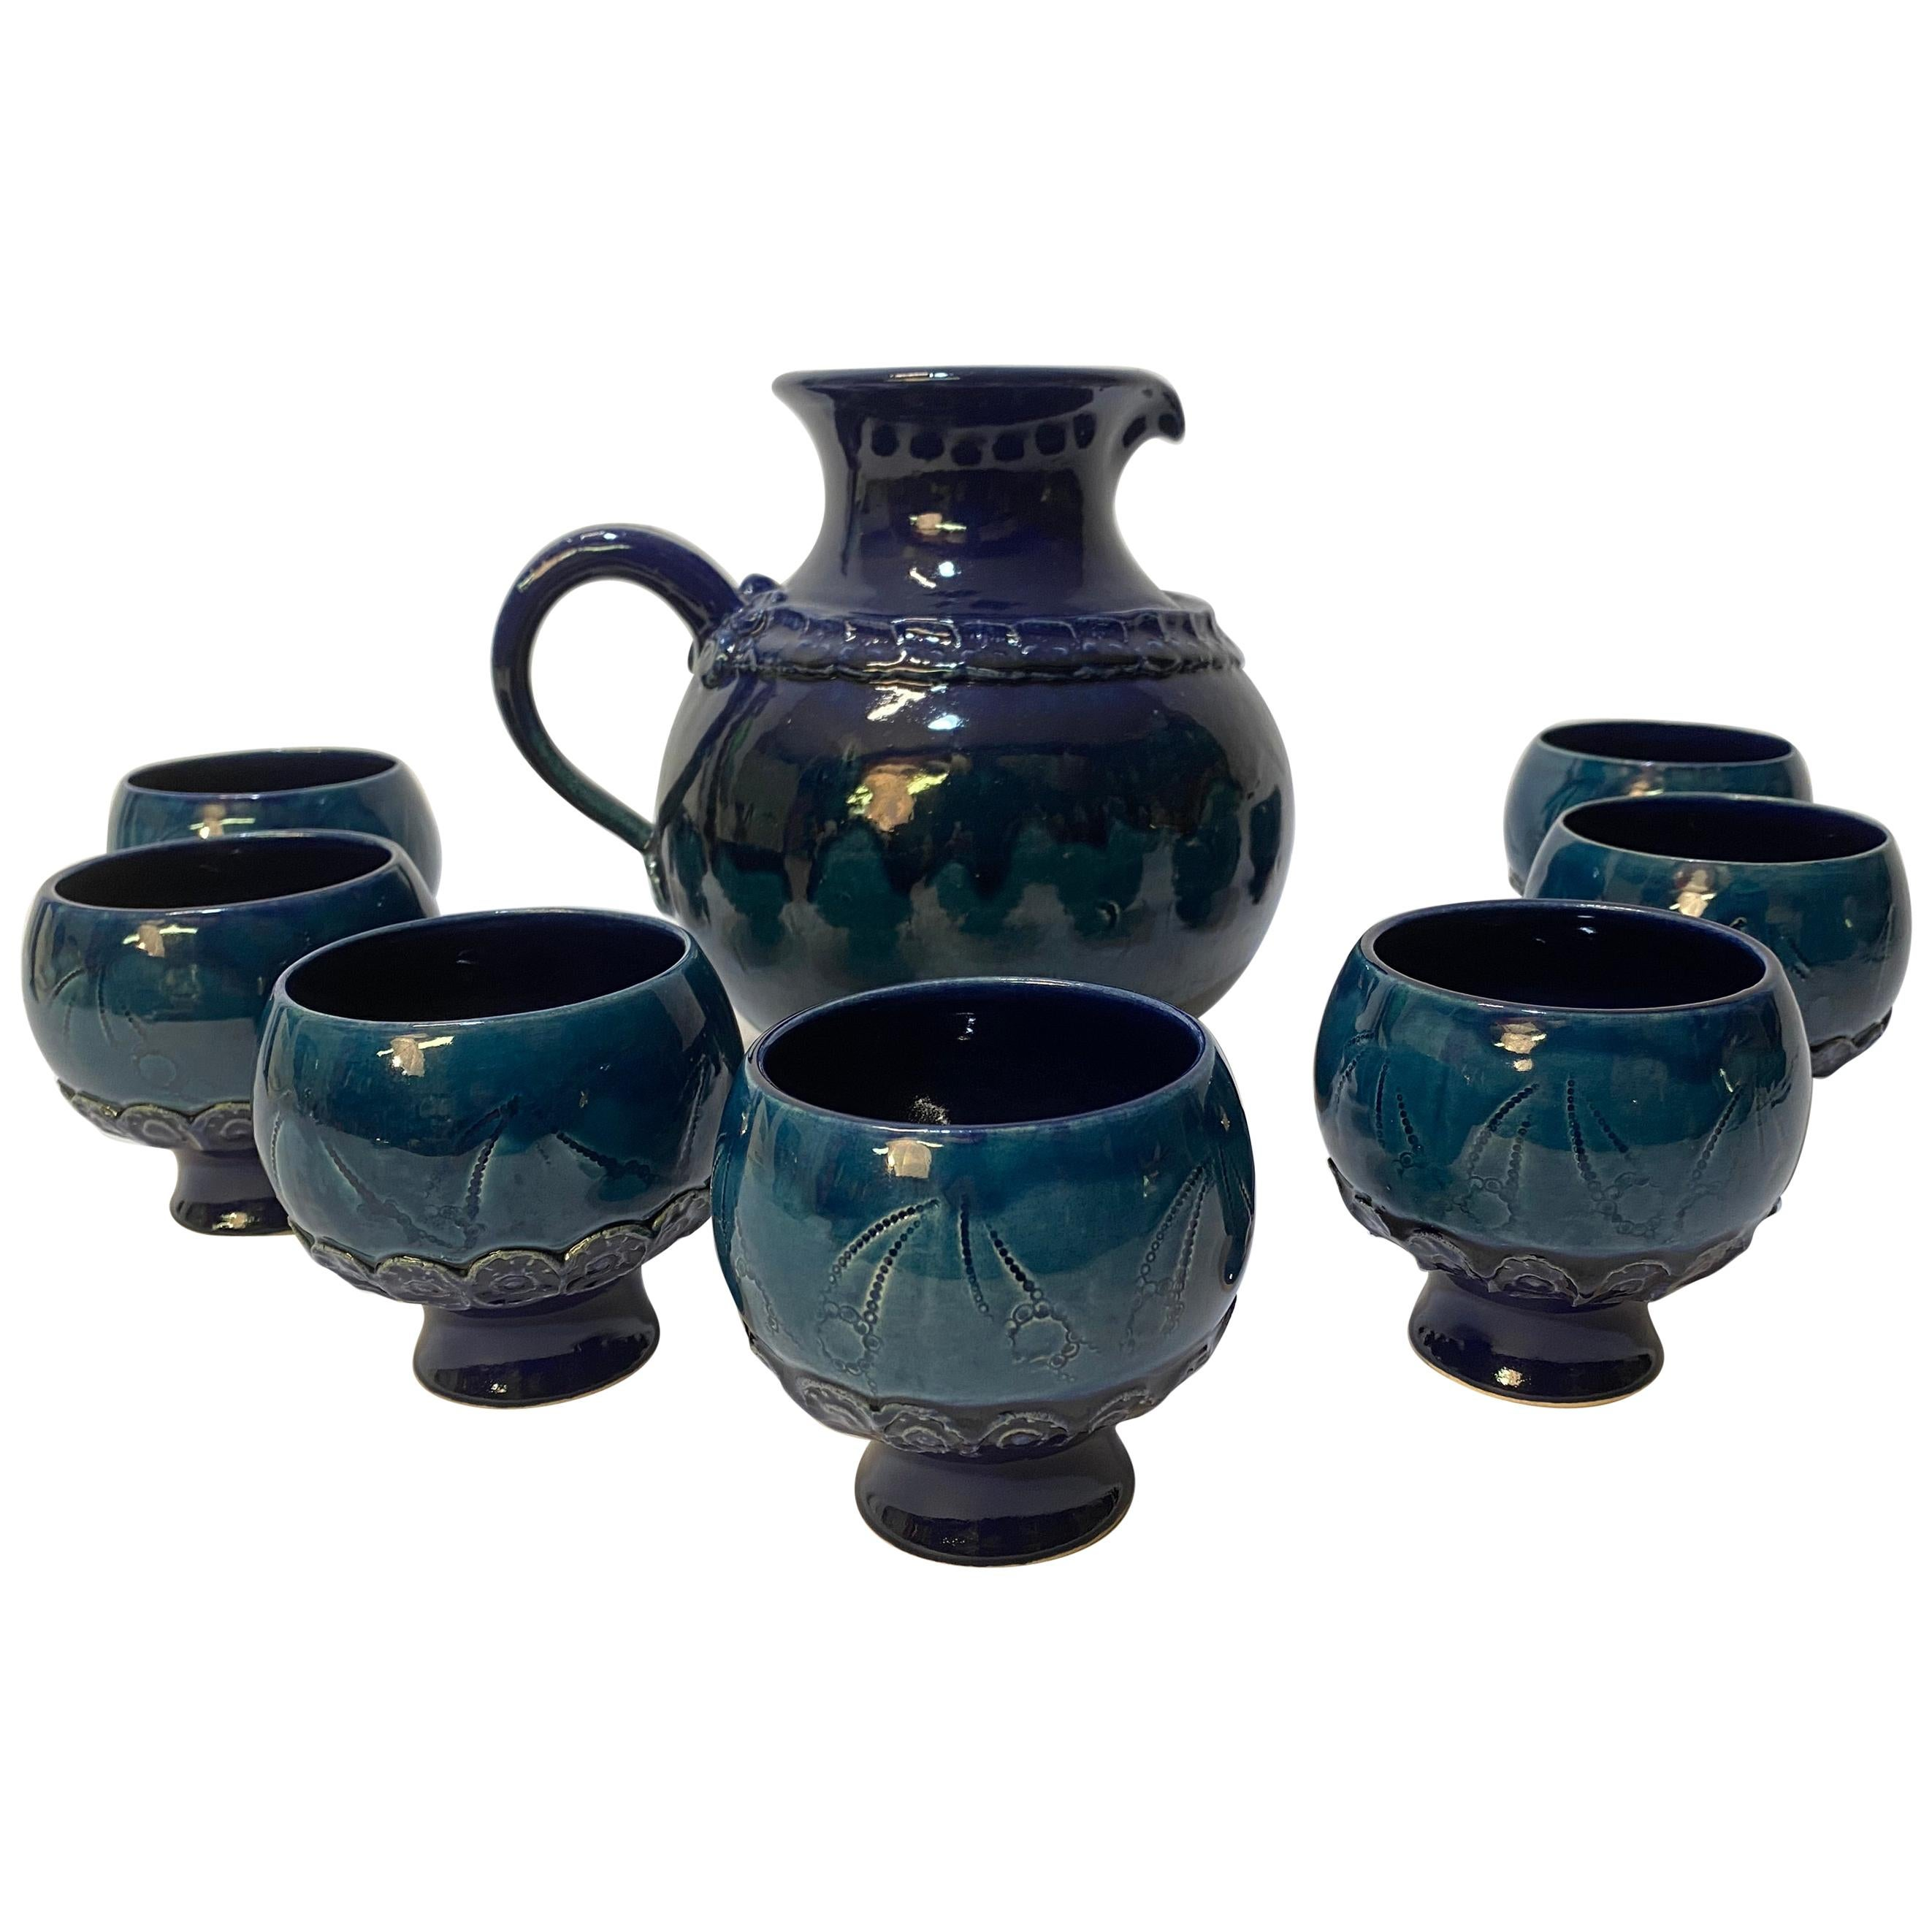 Bjorn Wiinblad for Rosenthal Pitcher and Cups